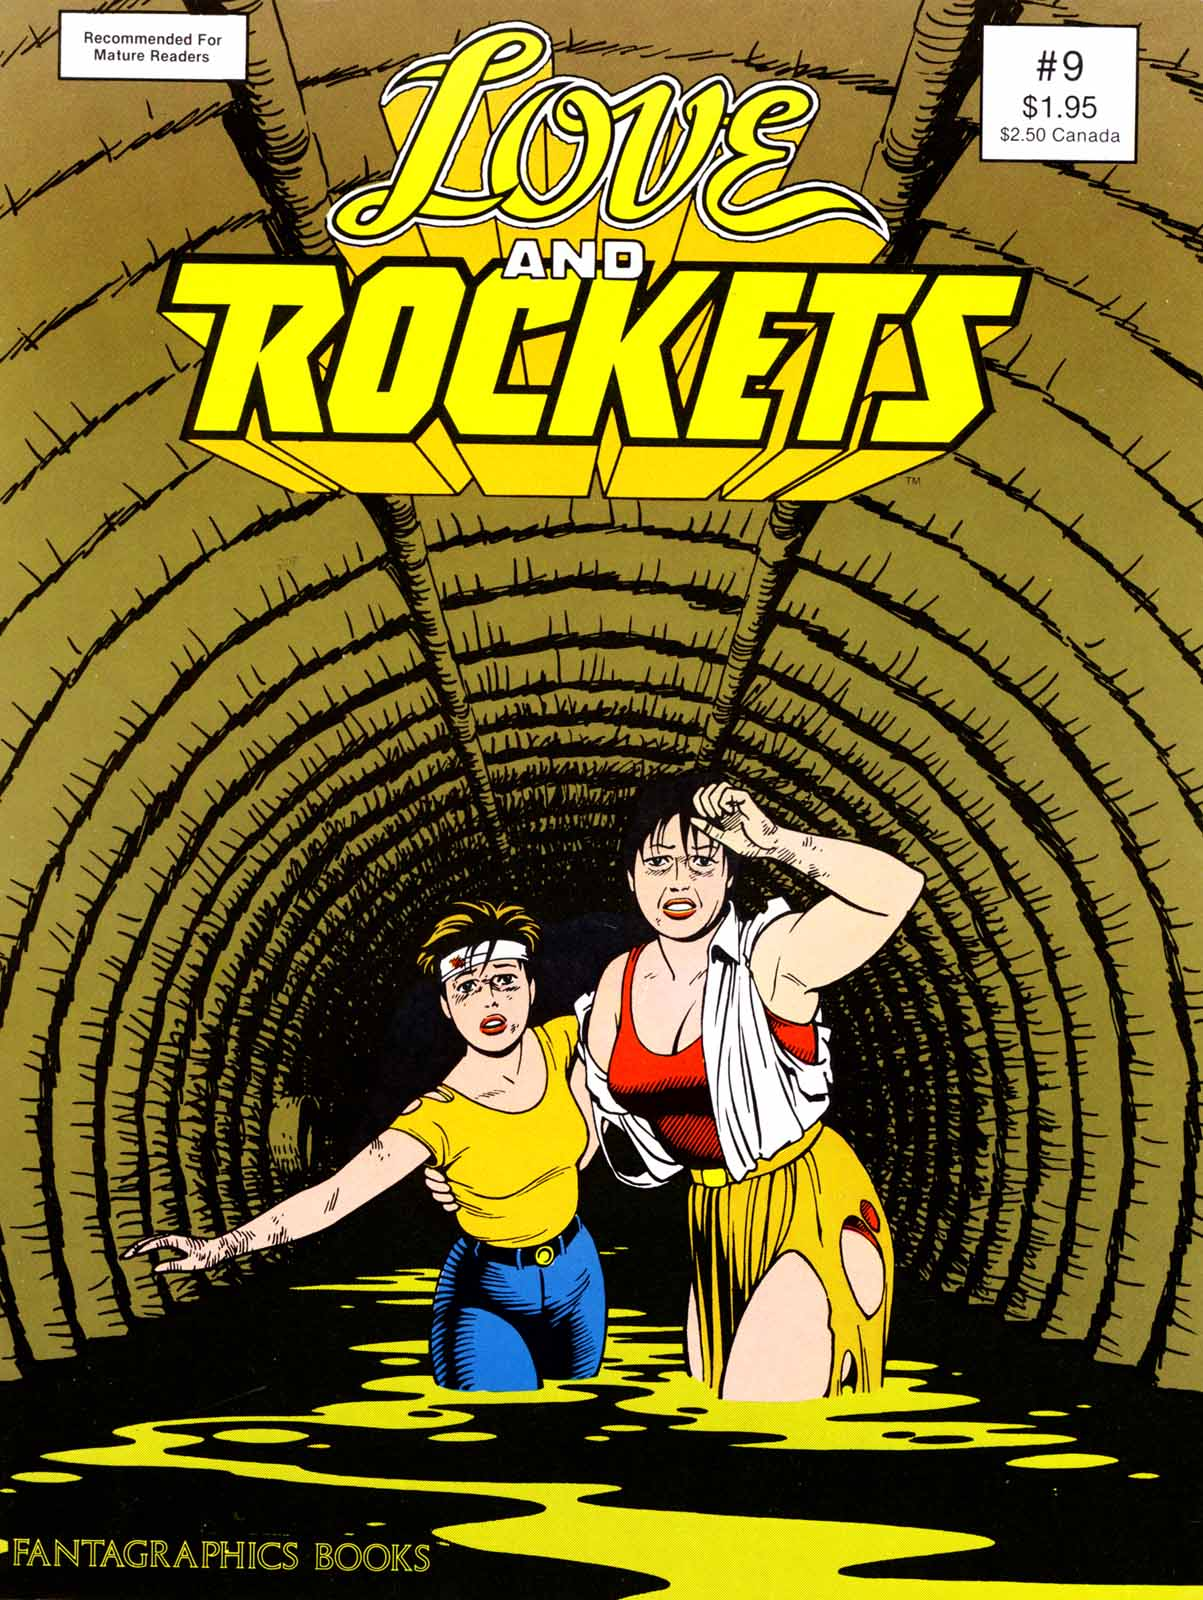 Love and Rockets (1982) issue 9 - Page 1